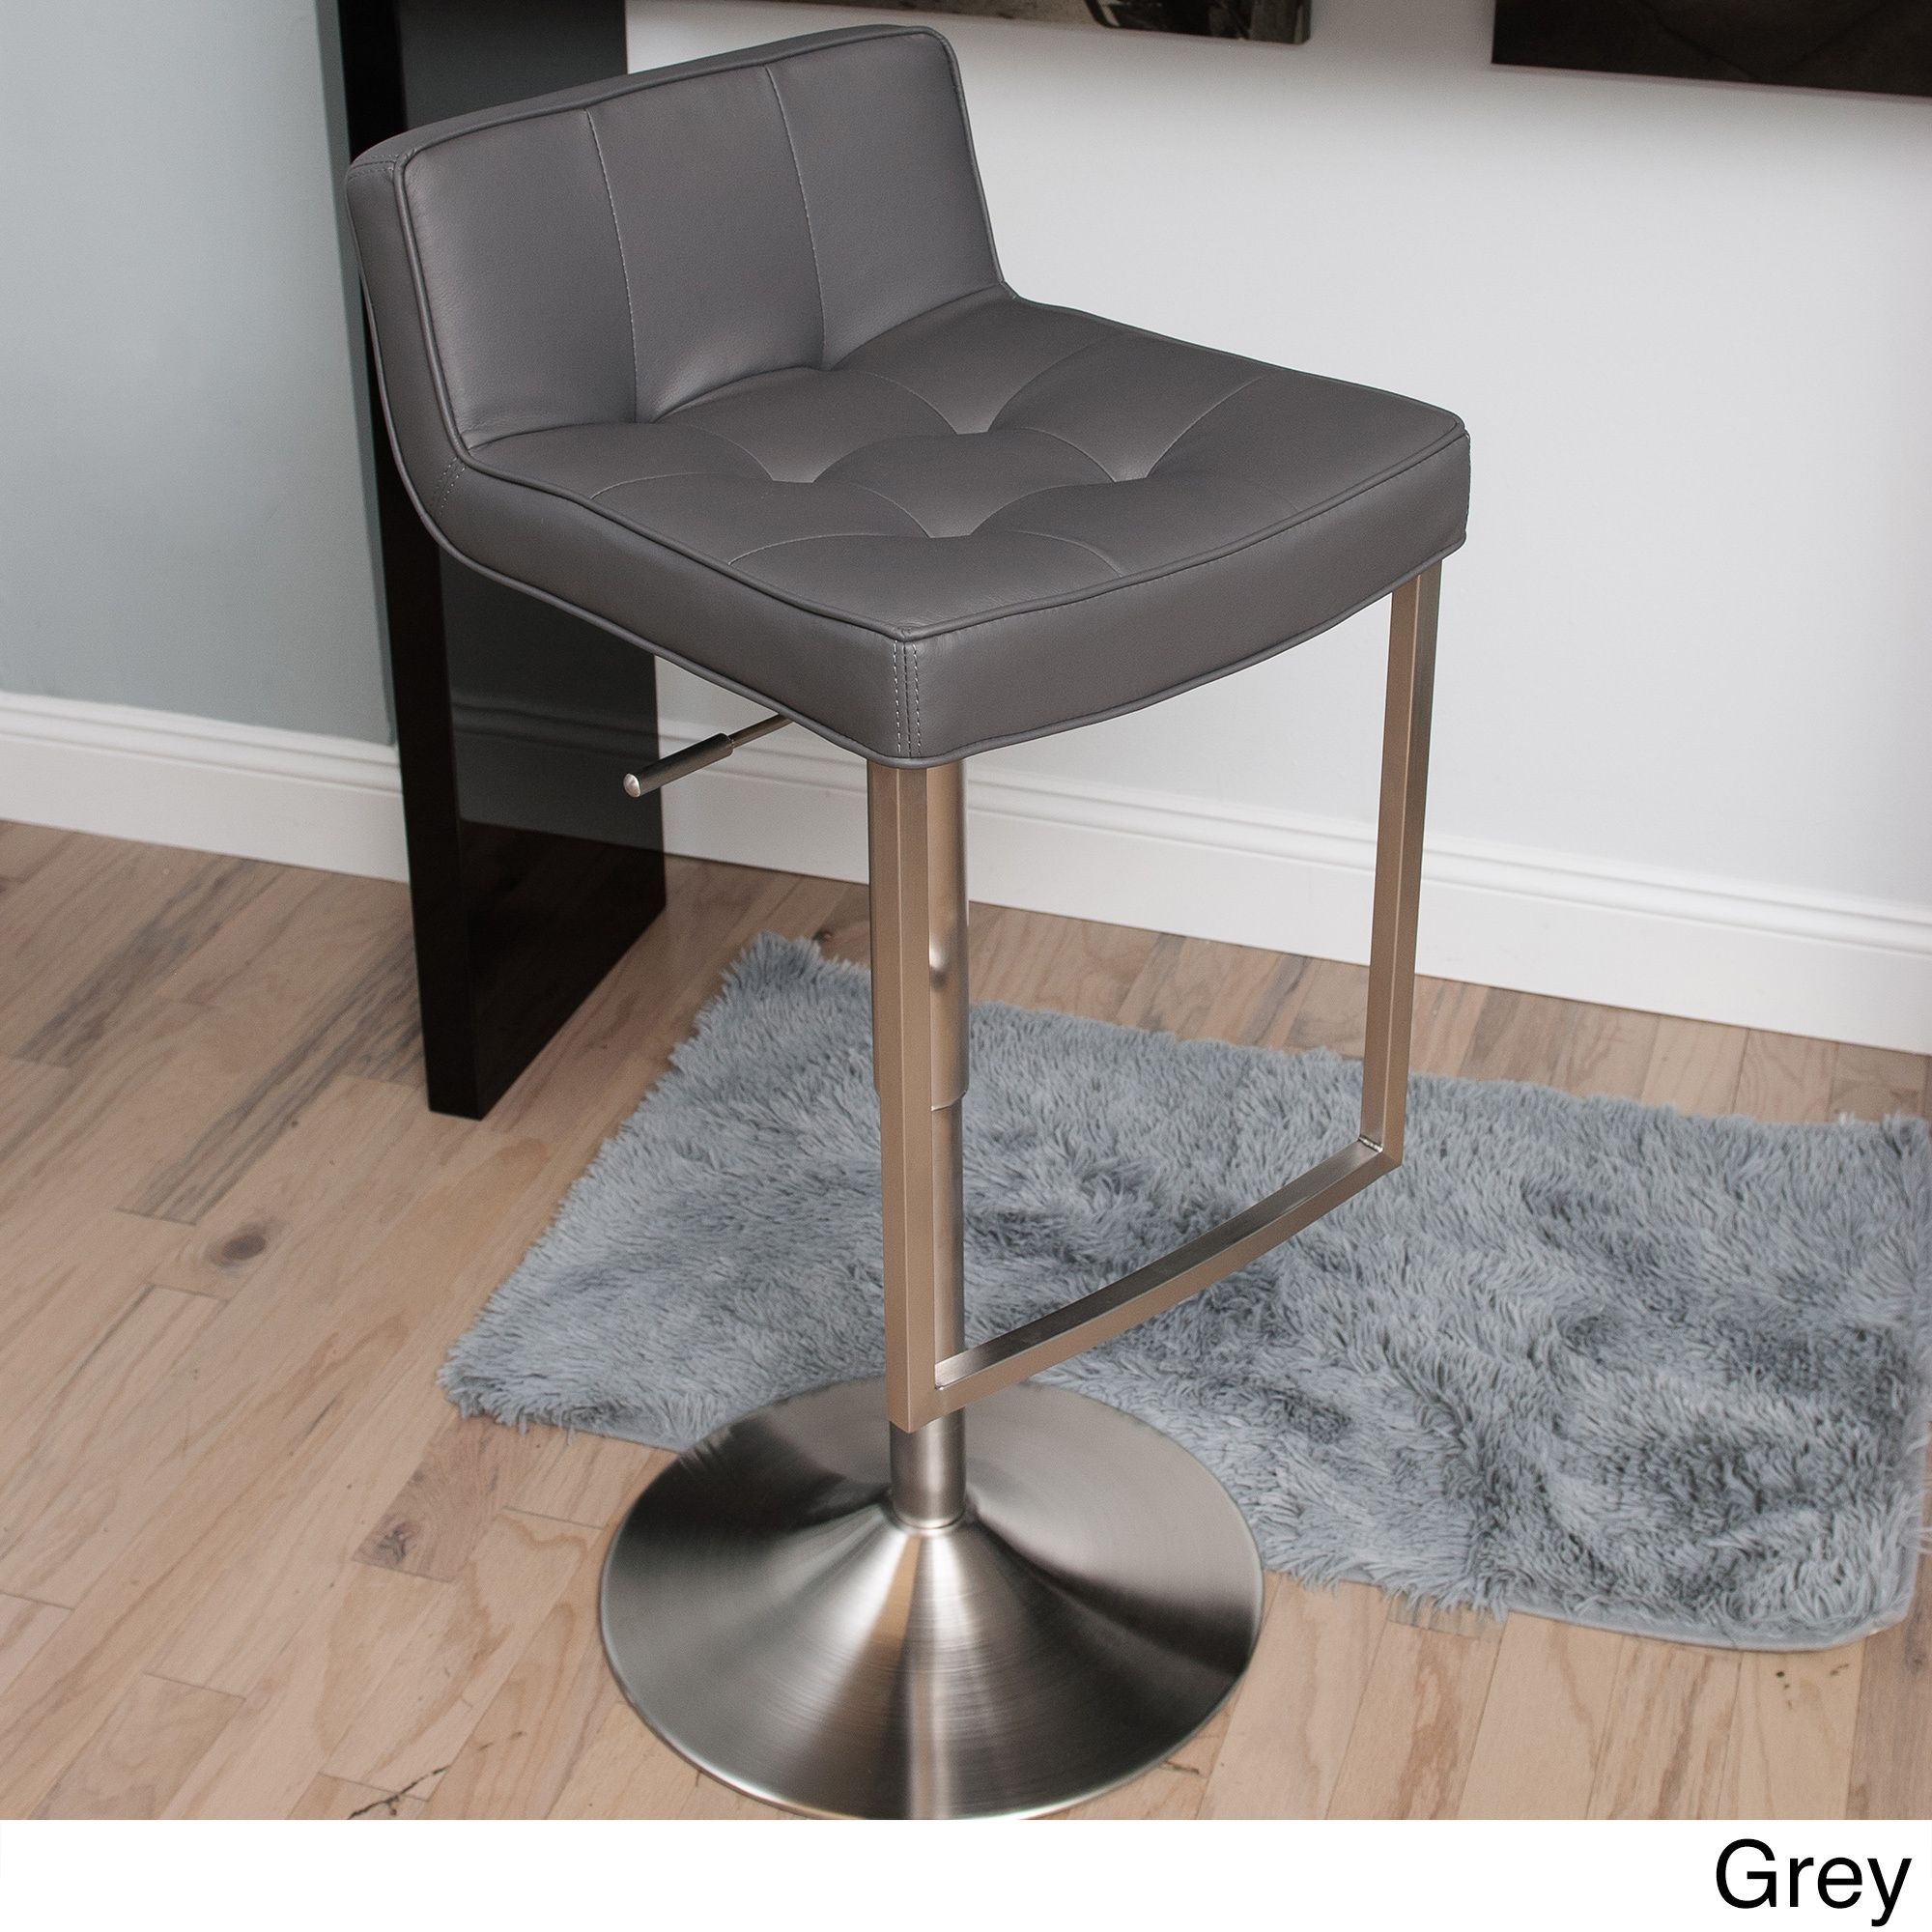 ideas classy hom enterwood flooring gray vinyl. Gray Contemporary Bar Stool. Stool - This Slick, Stylish Barstool Features A Ideas Classy Hom Enterwood Flooring Vinyl 6